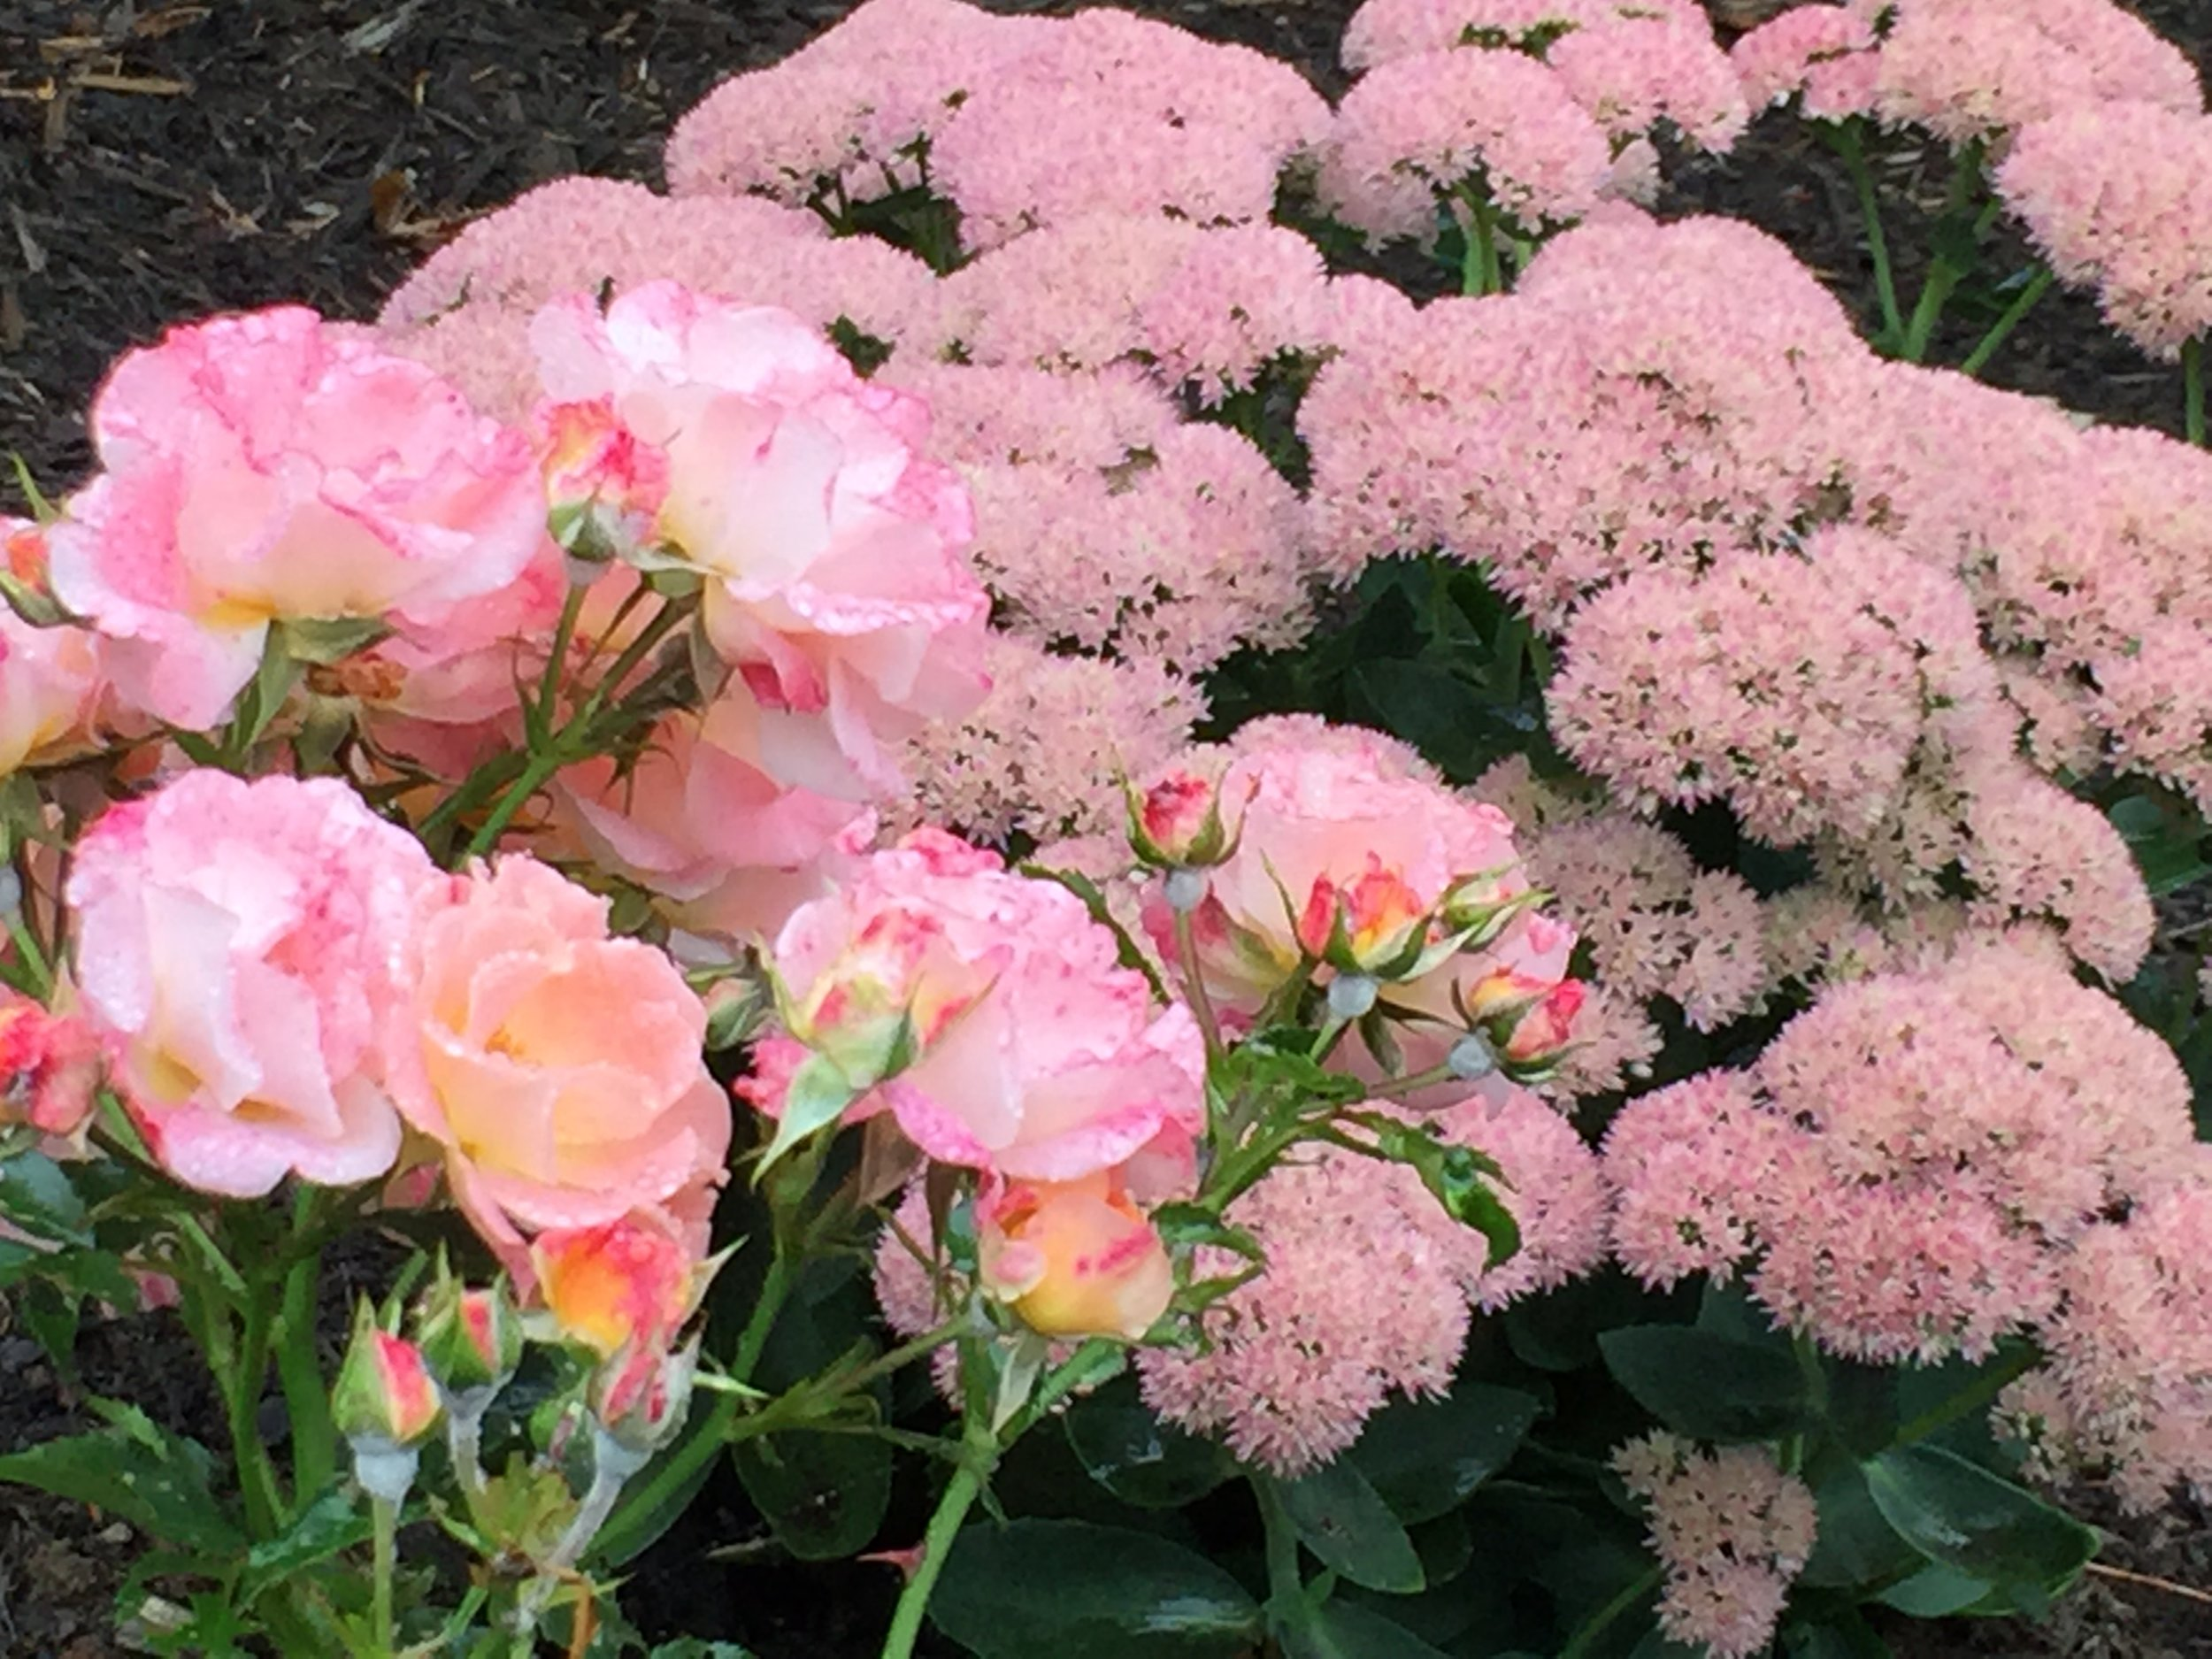 Fall blooming sedum 'Autumn Joy' pictured here with drift roses is a pollinator draw. Bees and butterflies love it.